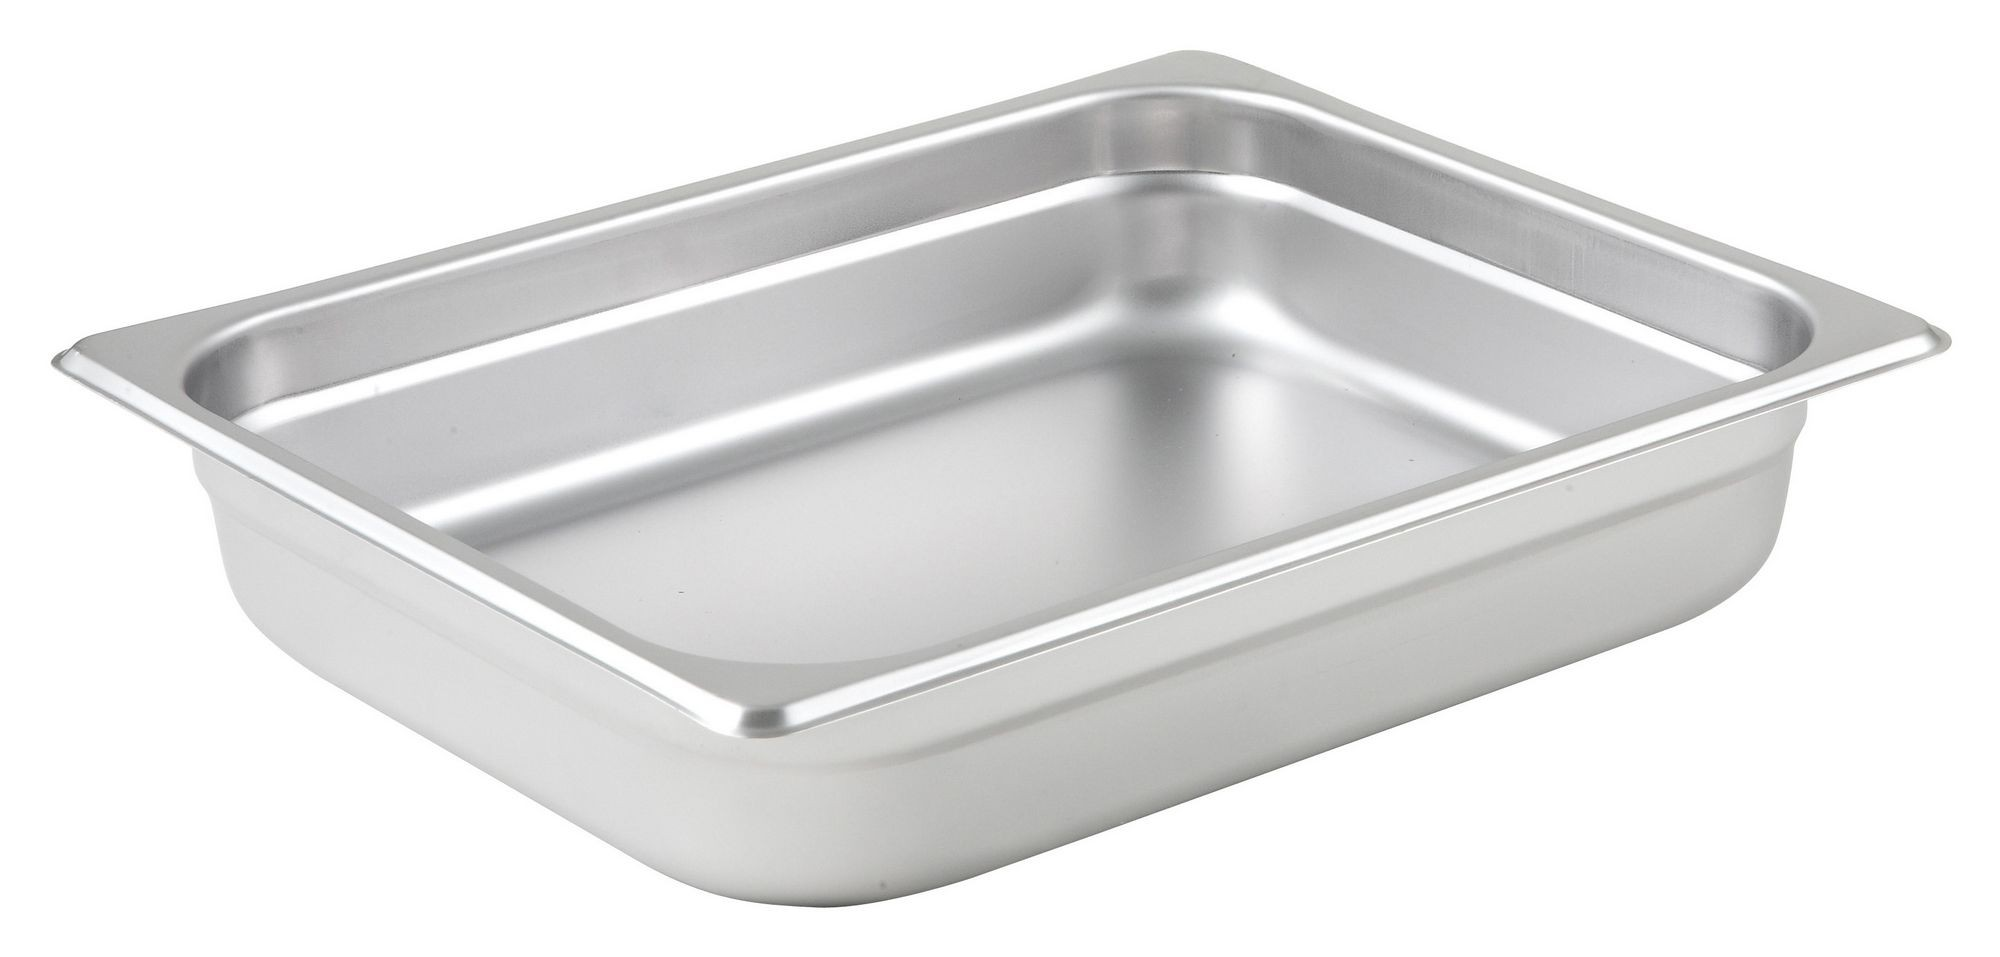 "Winco SPJP-202 1/2 Size Anti-Jam 23 Gauge Steam Table Pan 2-1/2"" Deep"